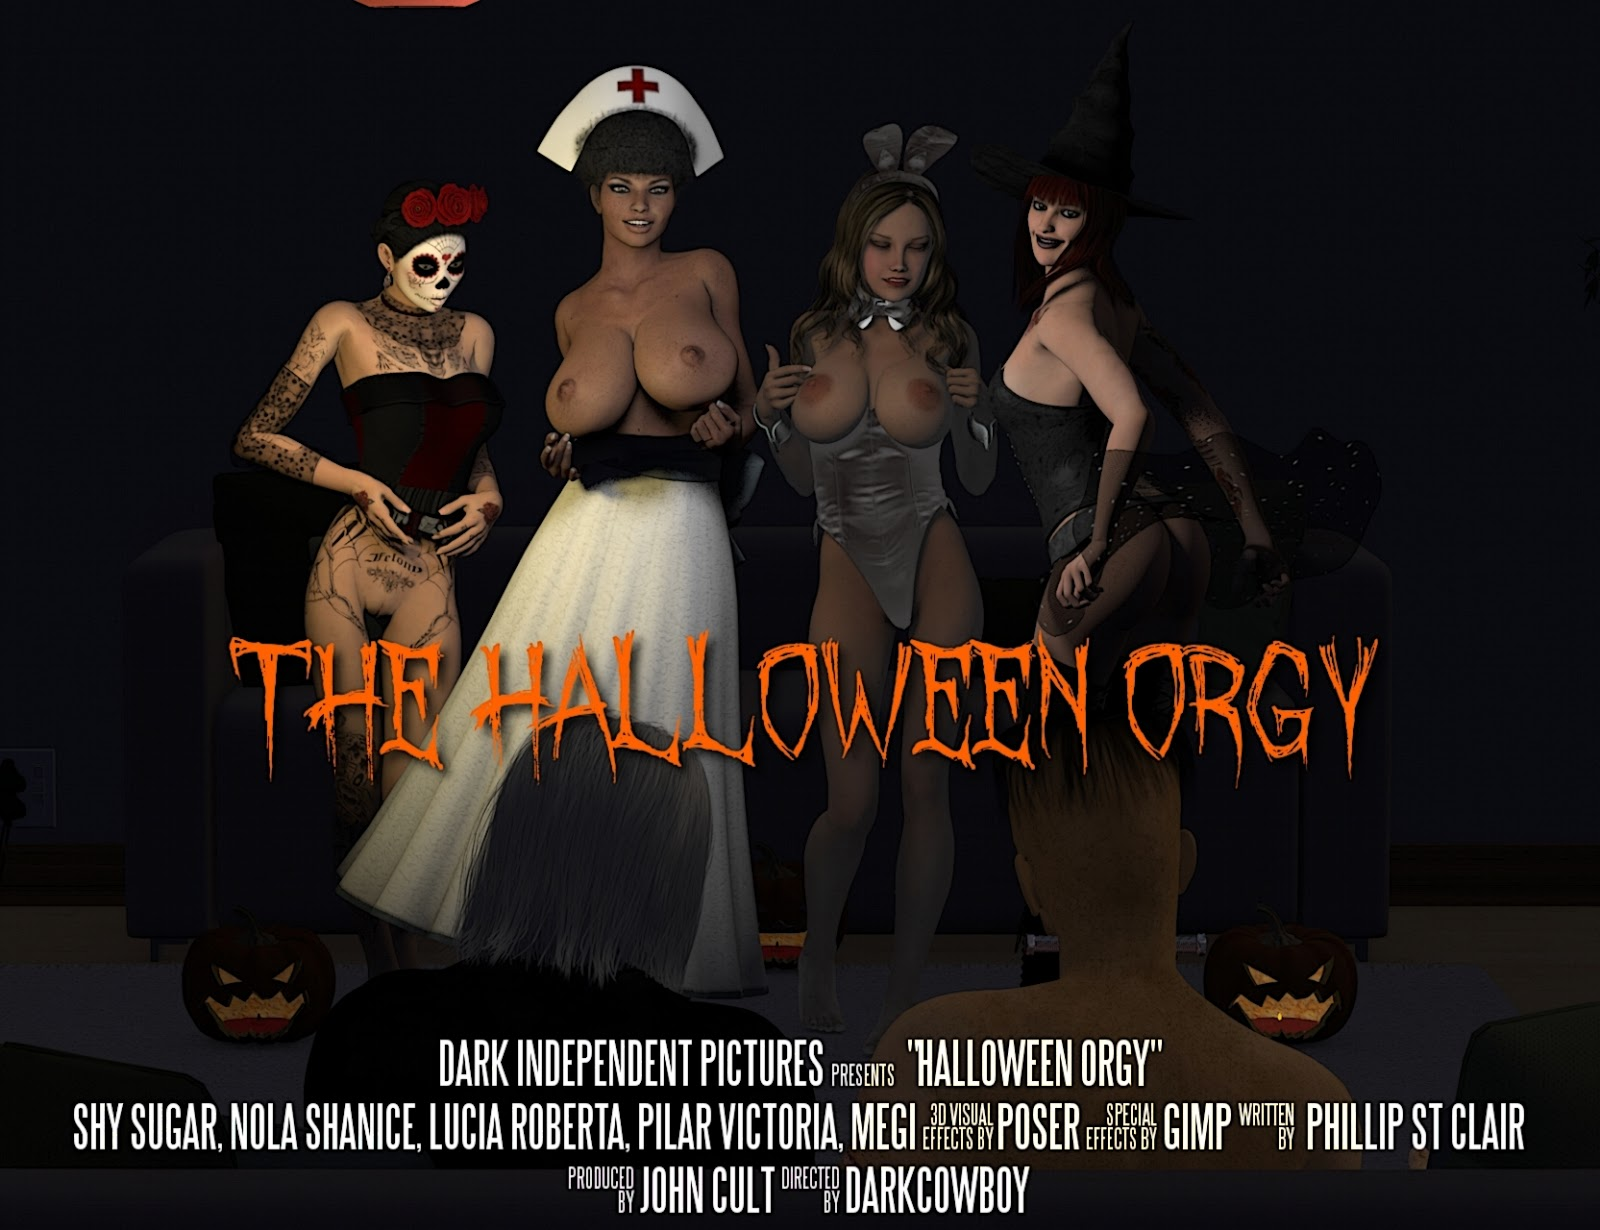 DarkCowBoy – The Halloween Orgy